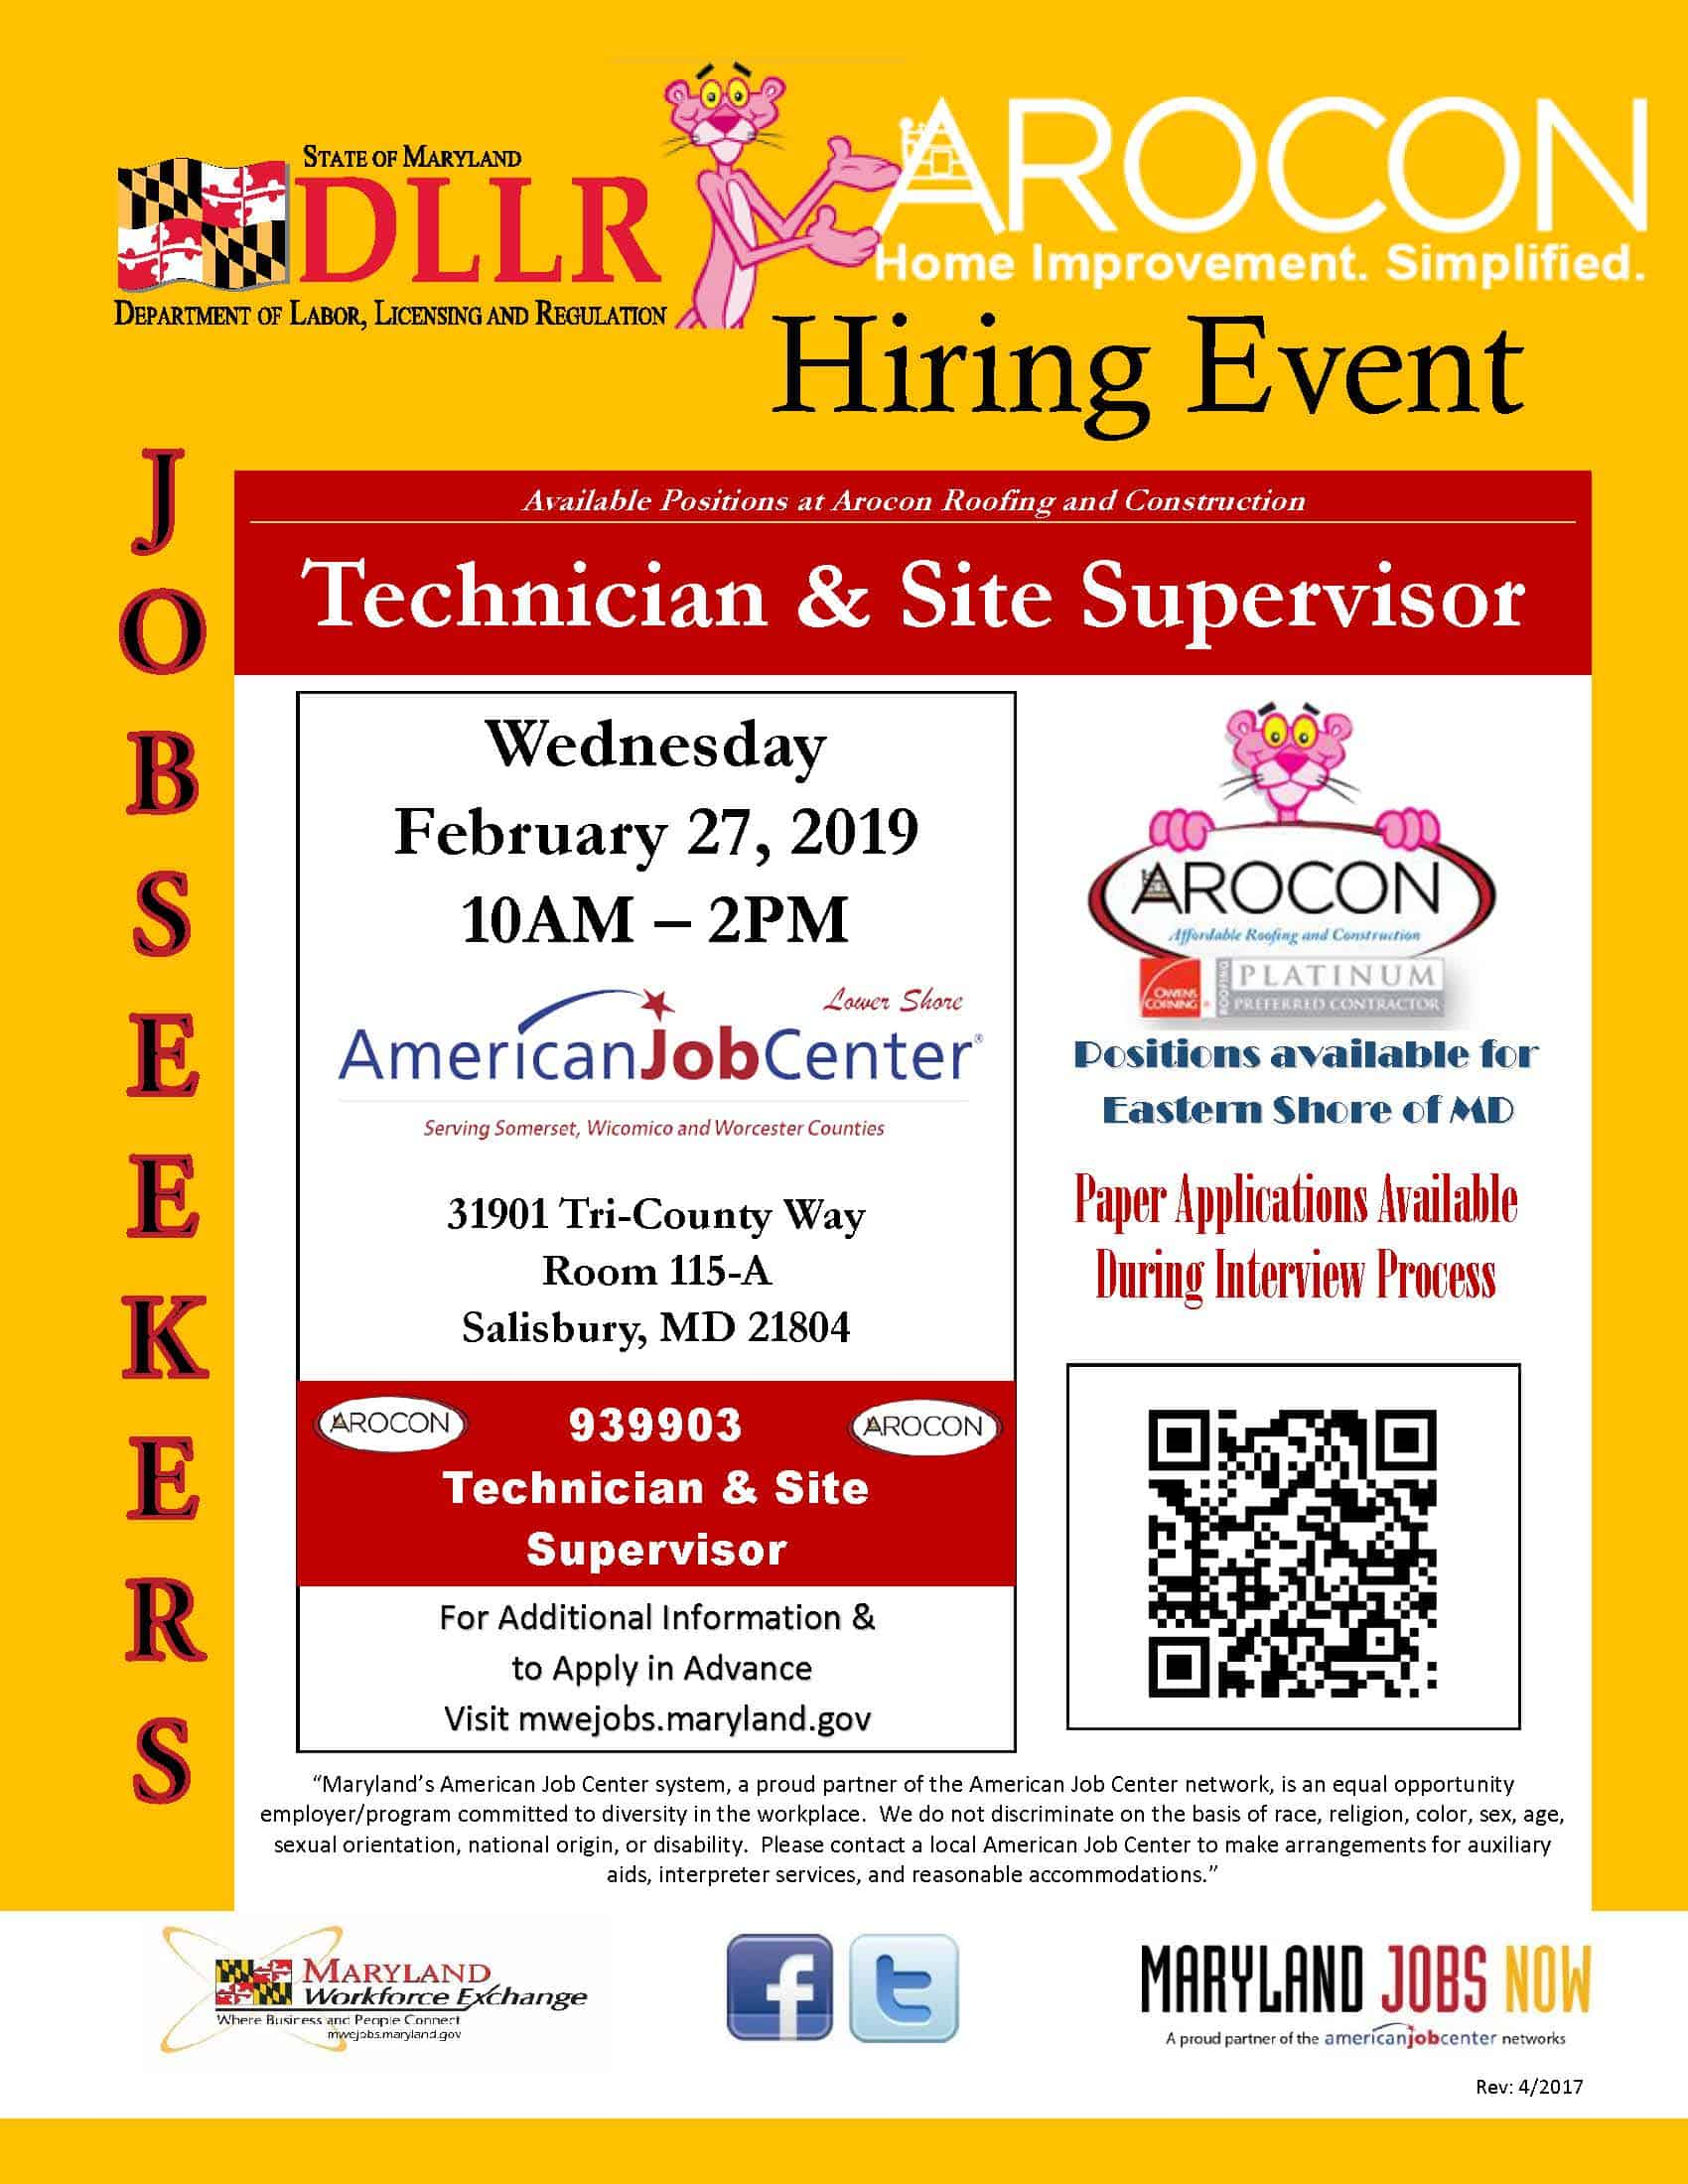 AROCON Hiring Event Flyer